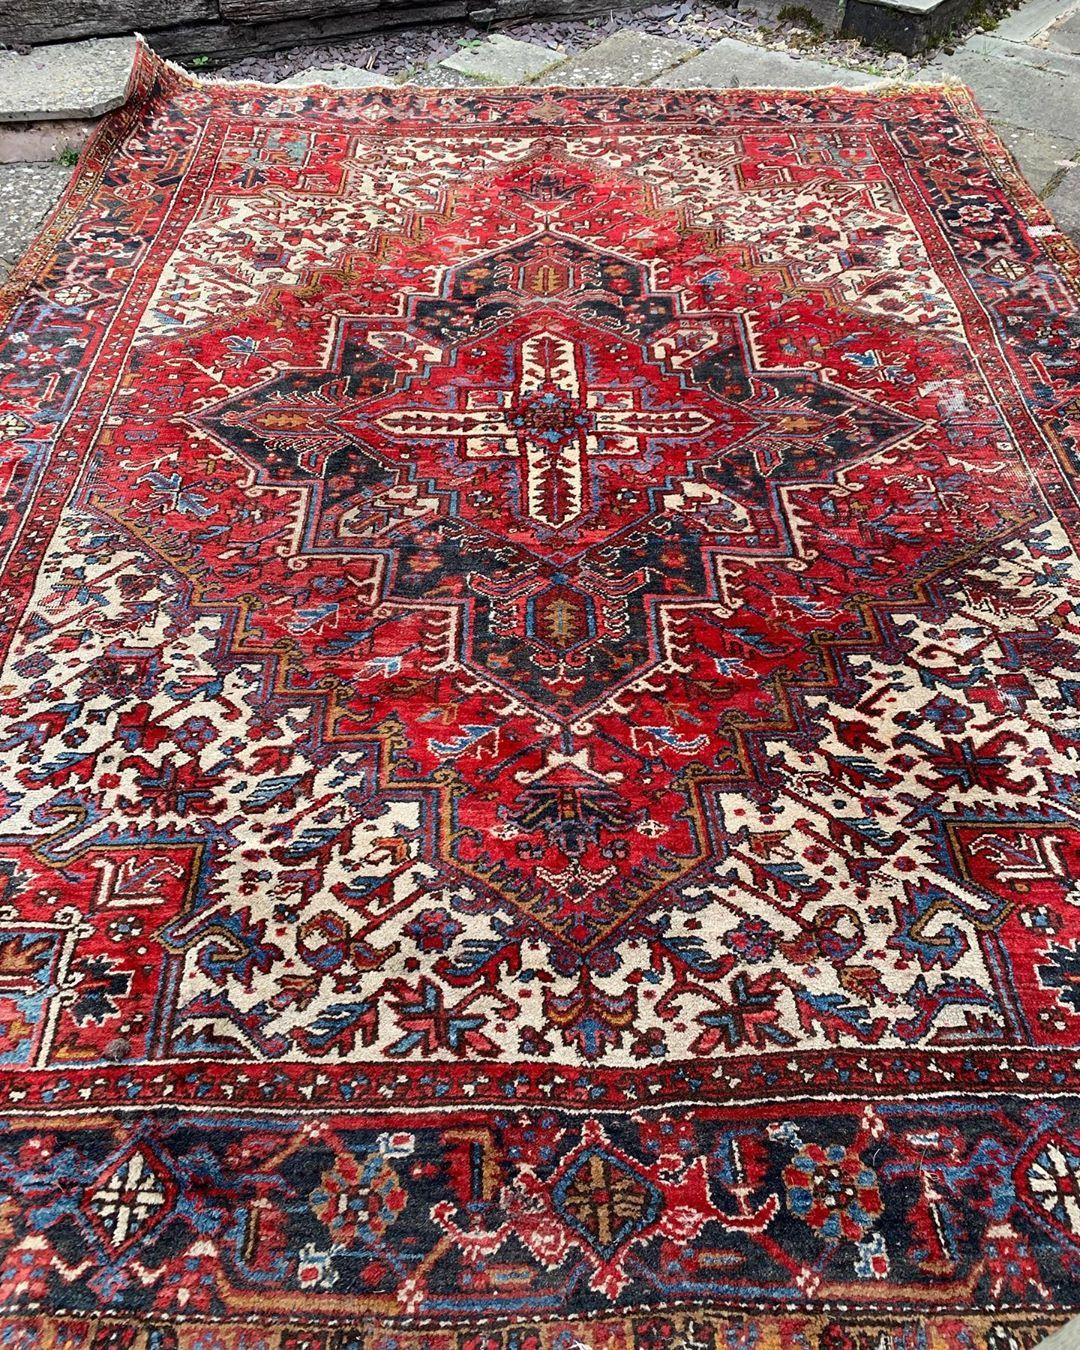 Sarah Tryon On Instagram Superb Heriz Carpet 10ft X 8ft Persiancarpet Persianheriz Herizcarpet Herizrugs Antiq In 2020 Antique Carpets Heriz Rugs Persian Carpet